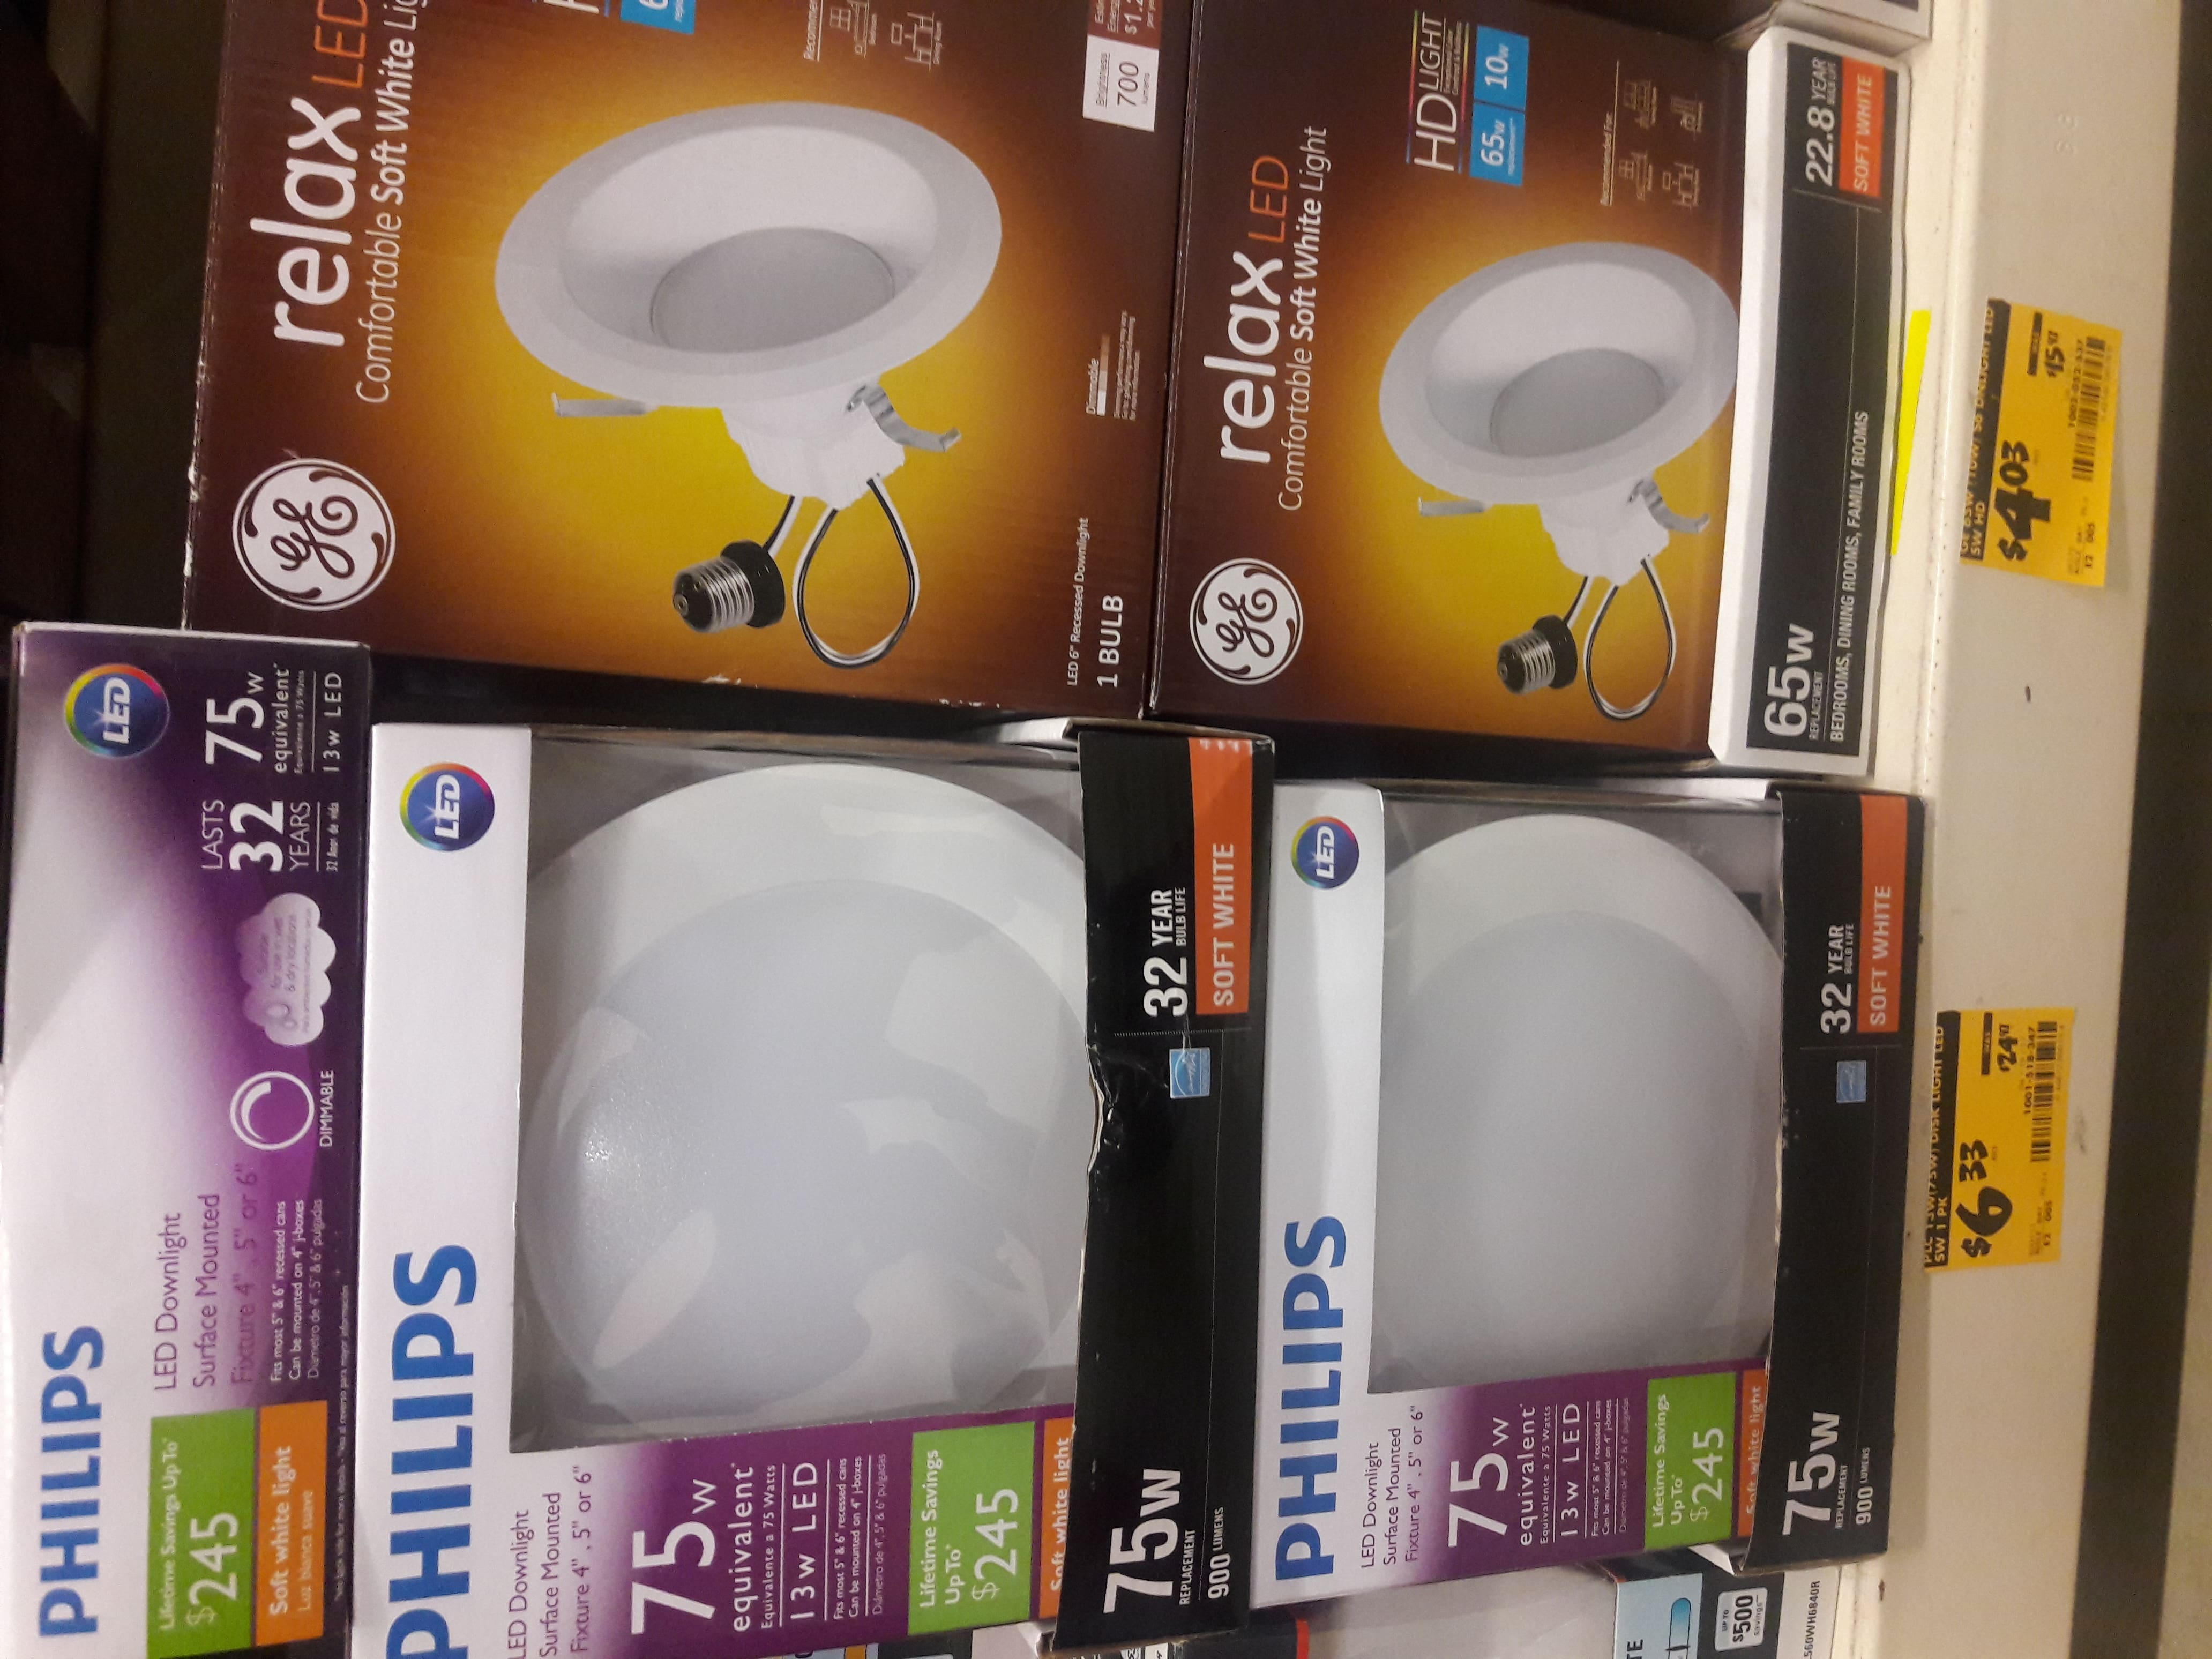 Philips 75W Equivalent Soft White BR30 LED Energy Star Downlight Surface Mounted Fixture $6.33 @ Home Depot